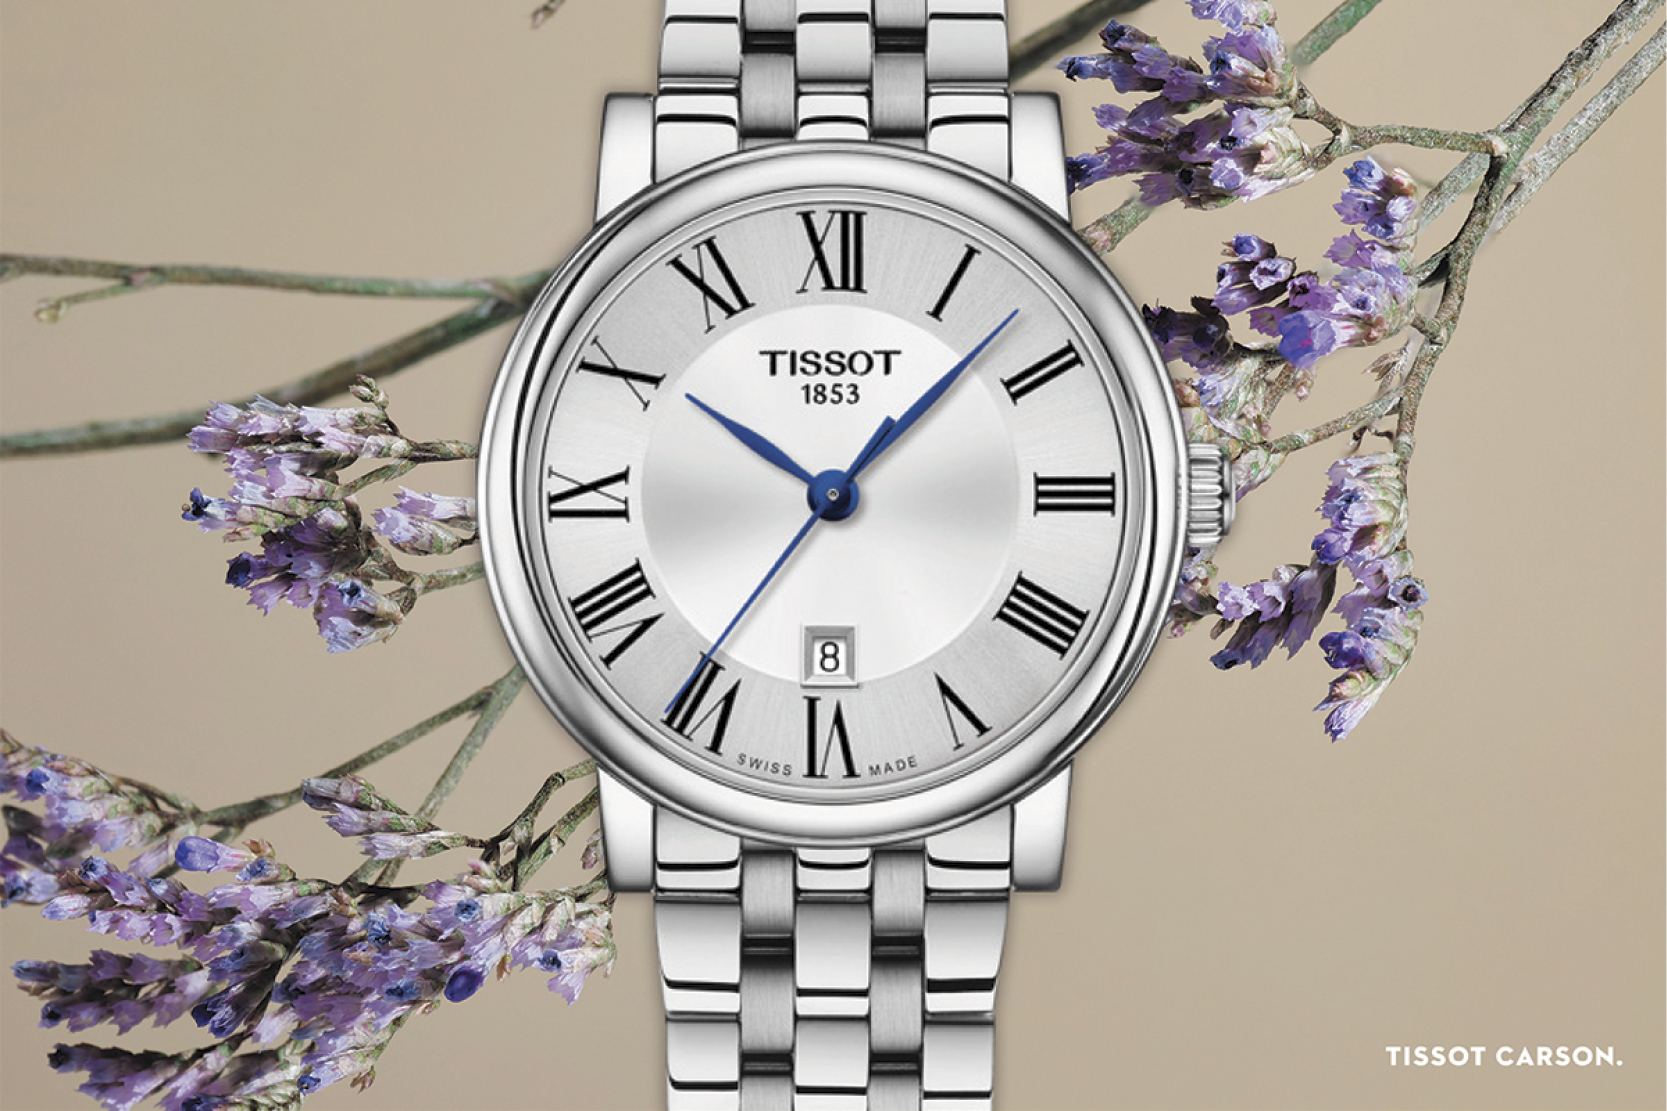 Try your luck at Crack the Code by Tissot!